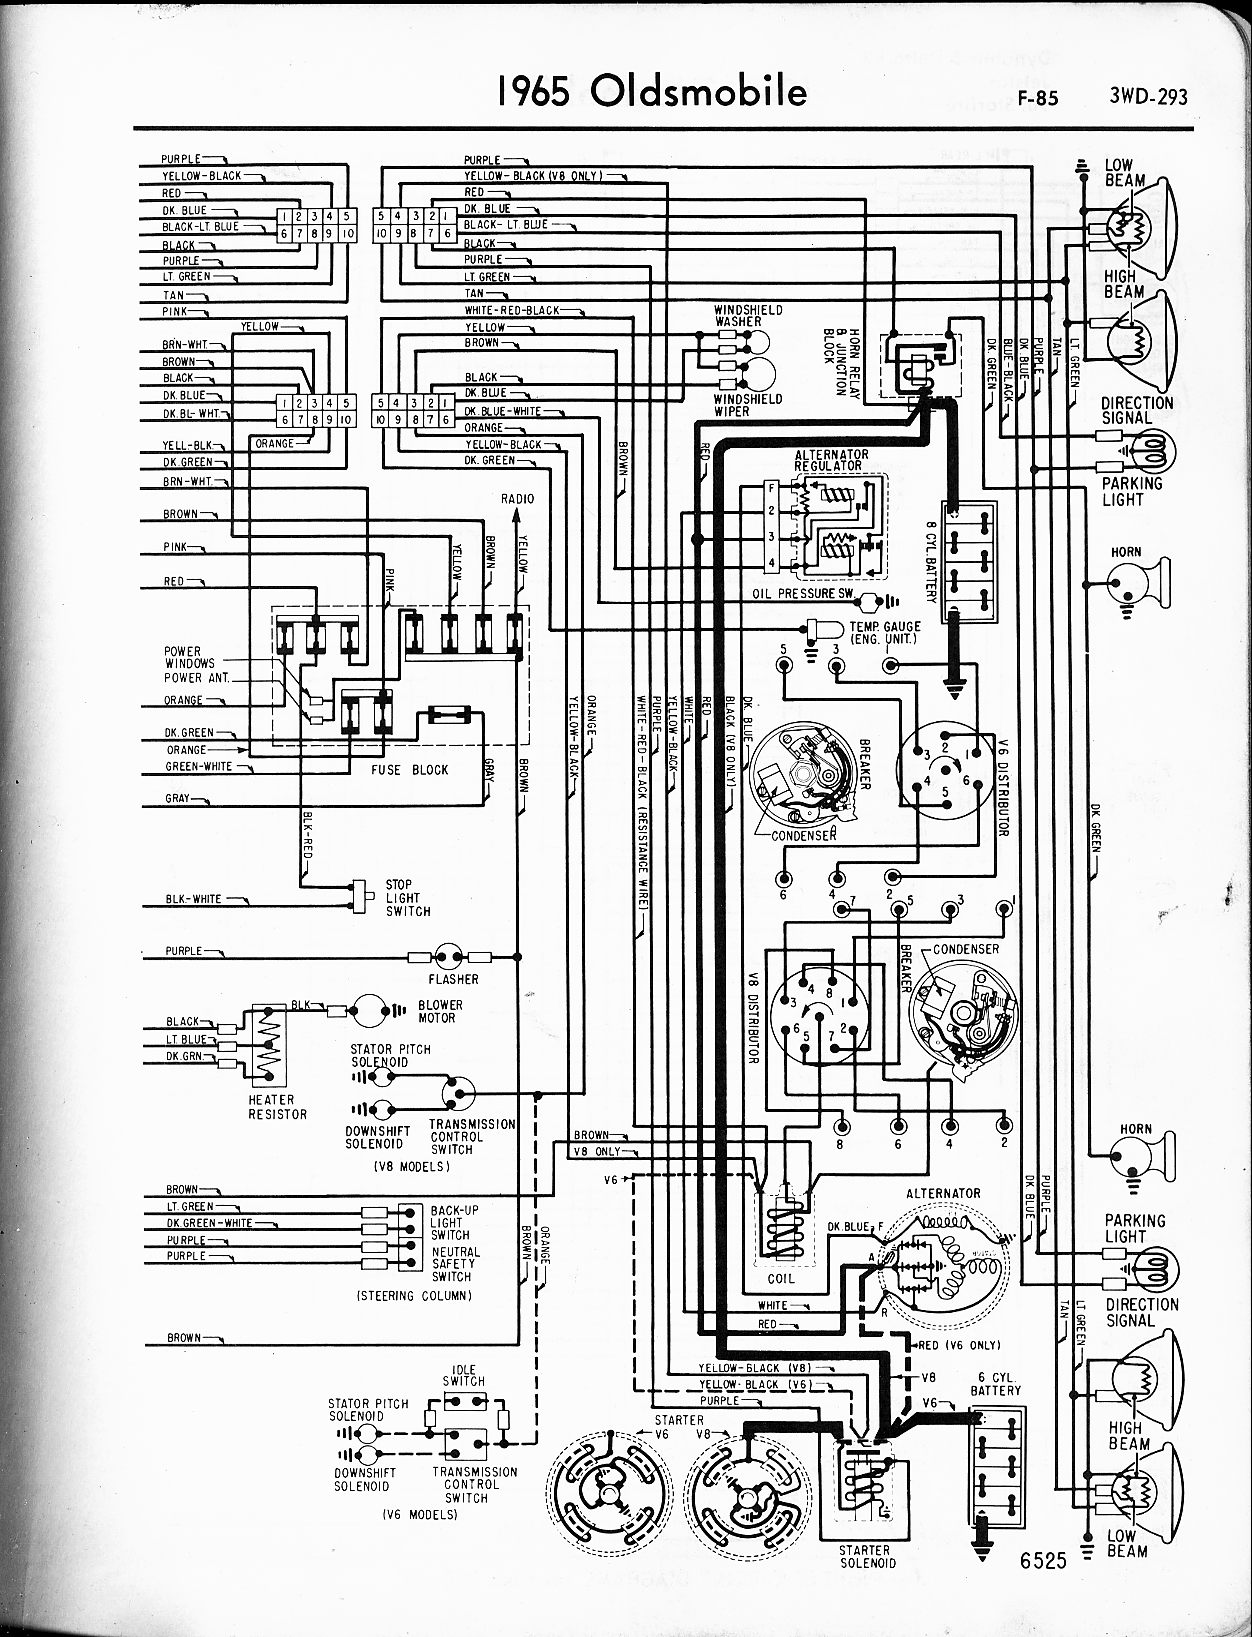 98 Oldsmobile Achieva Wiring Diagram - Wiring Diagram Value on